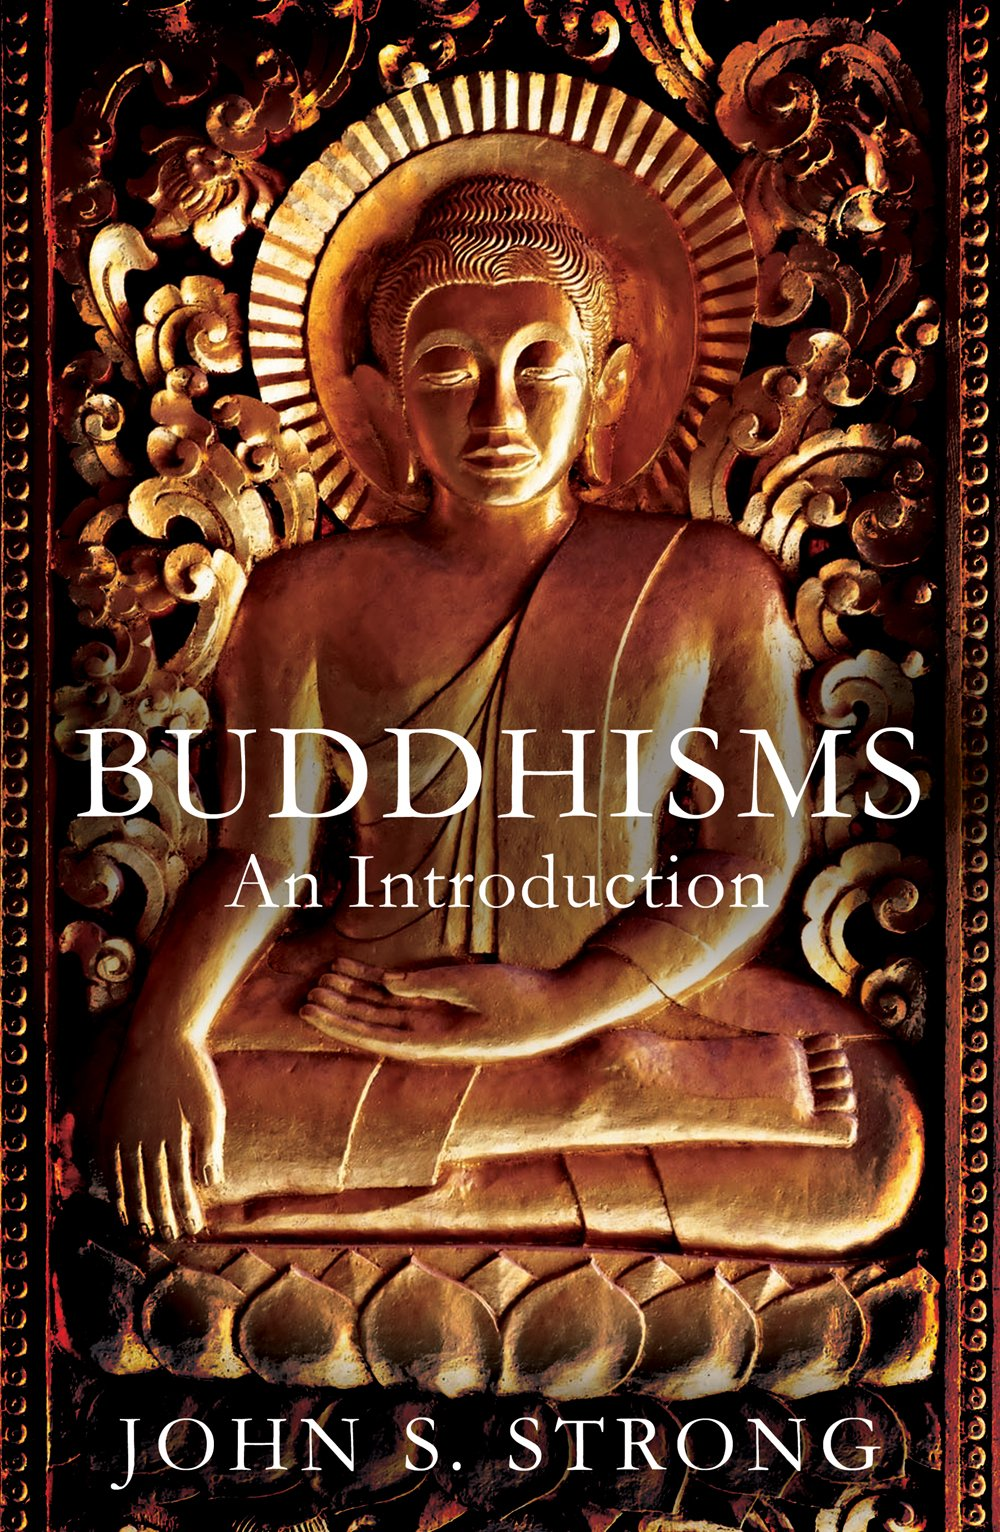 Strong Buddhisms Introduction cover art